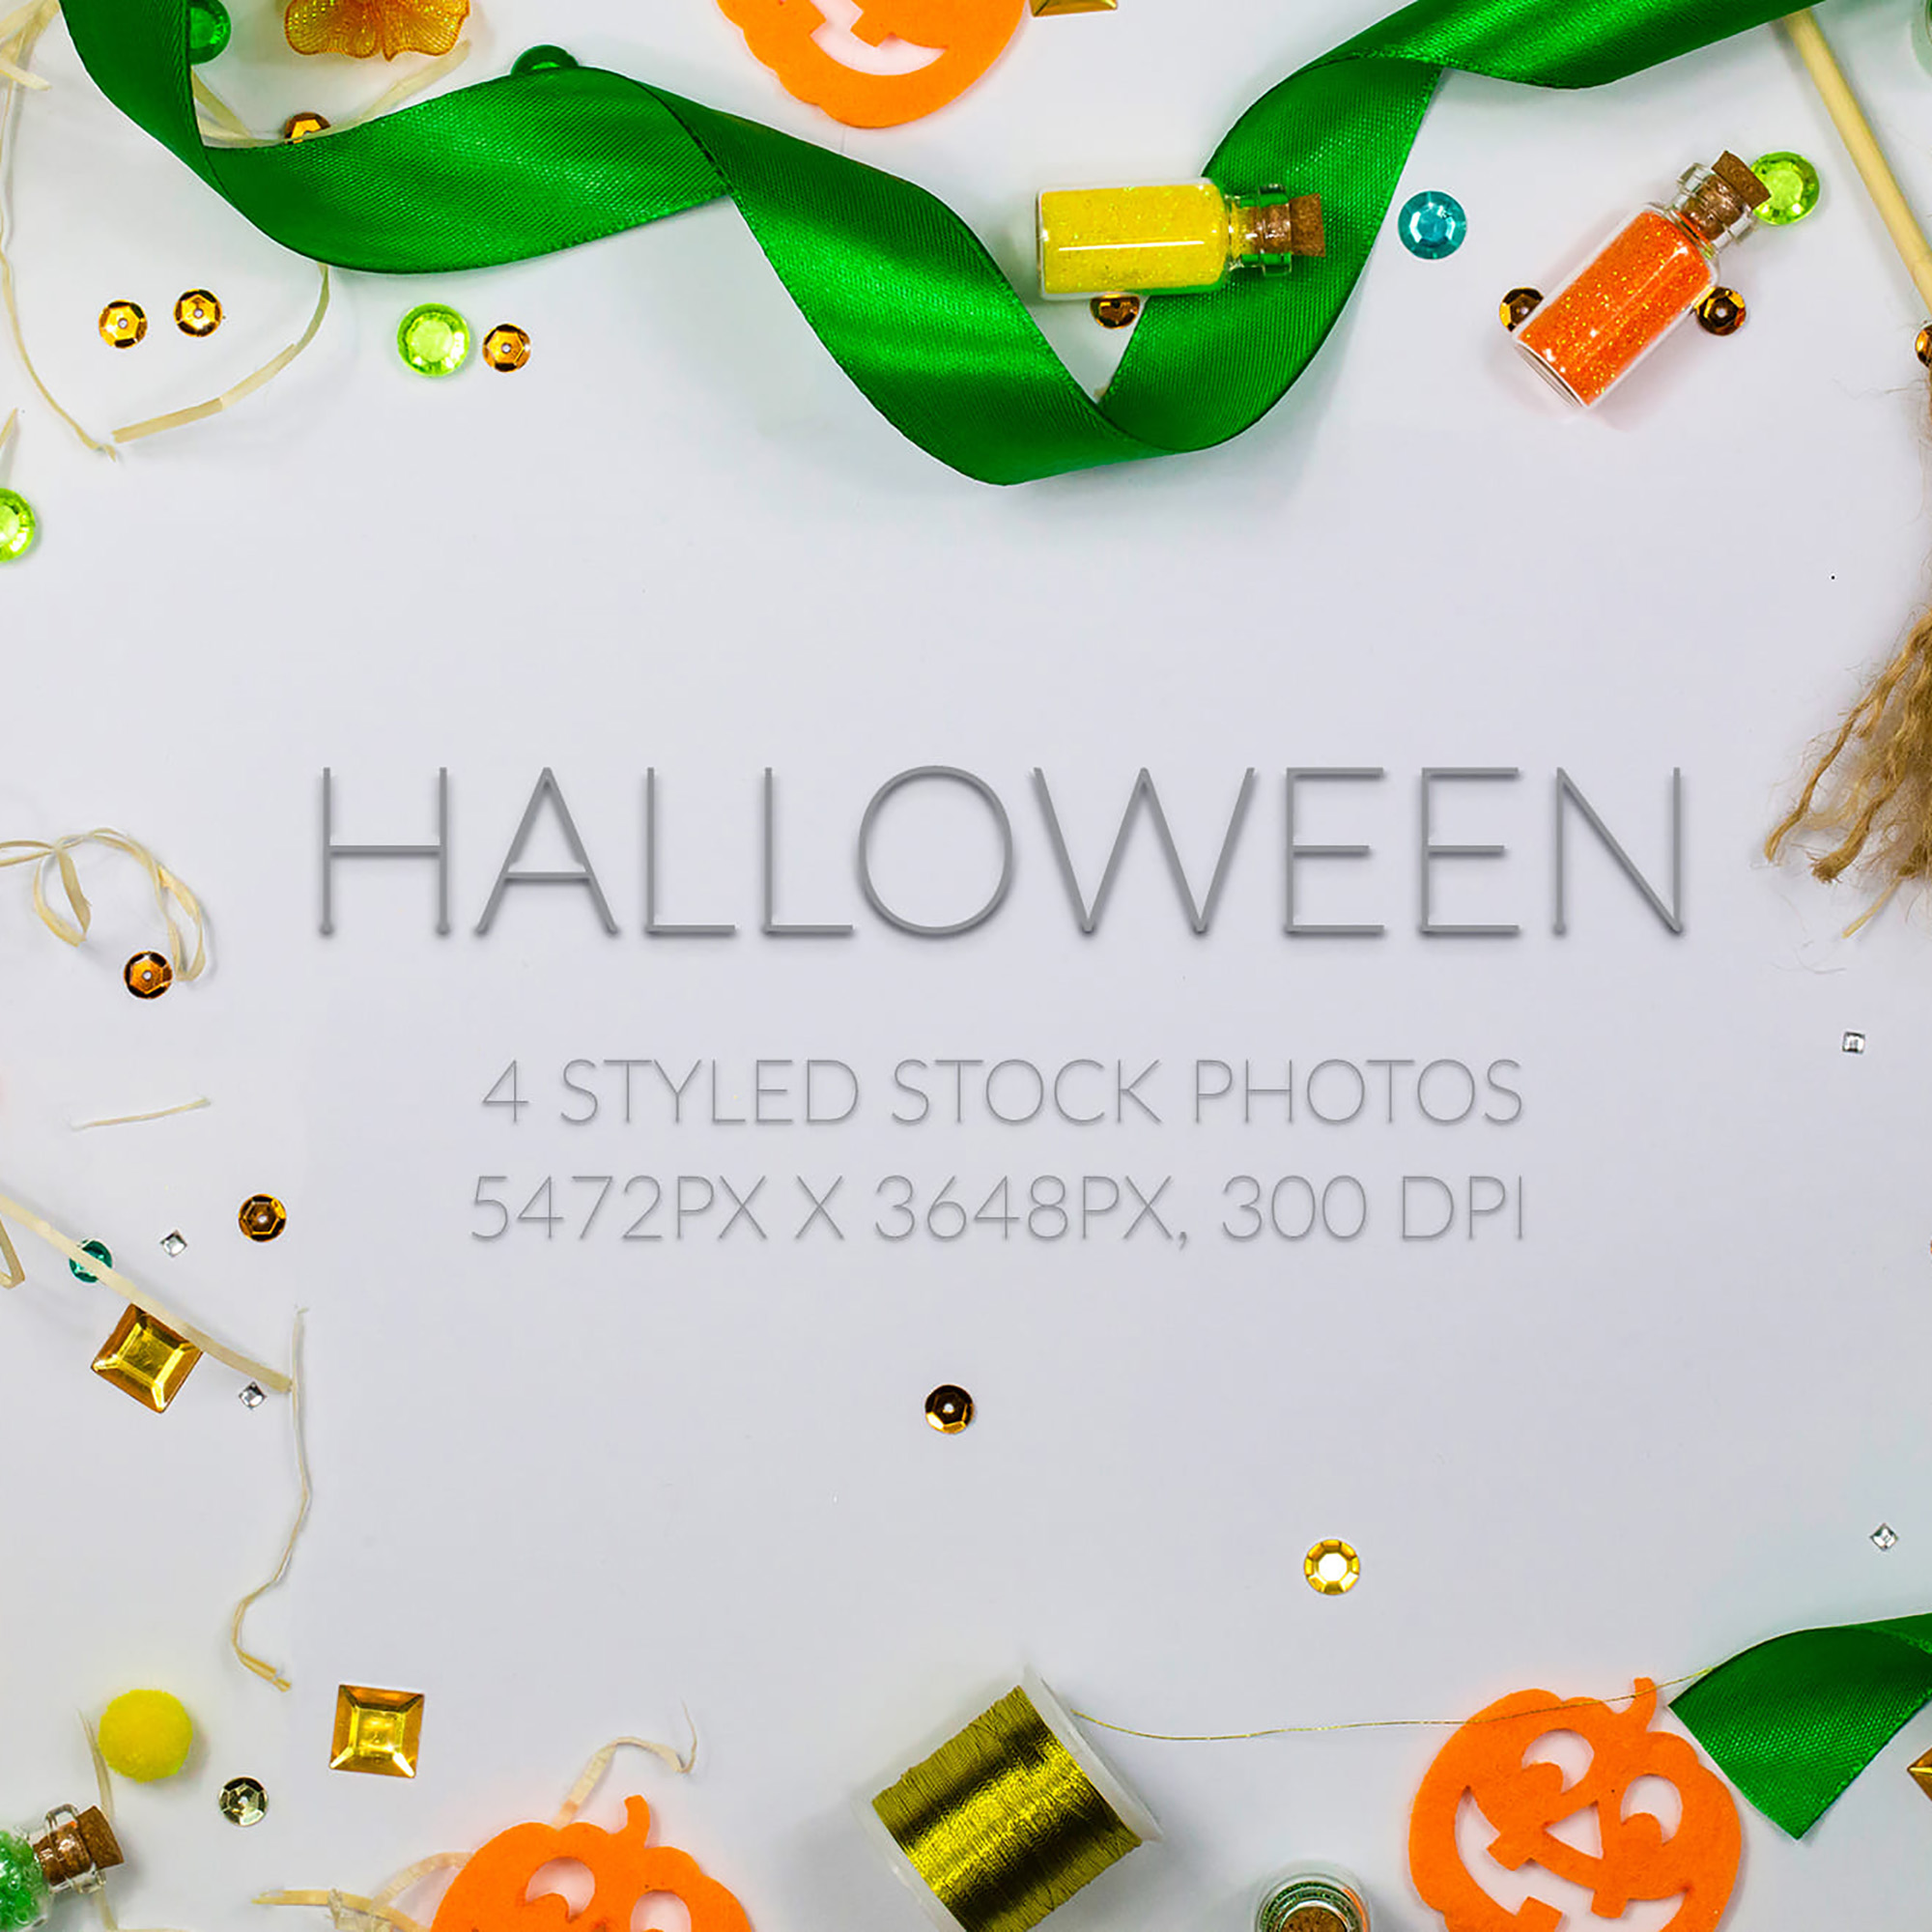 Halloween Overlays Bundle: Dark, Sparkly & Lights Overlays - Halloween Stock Photos